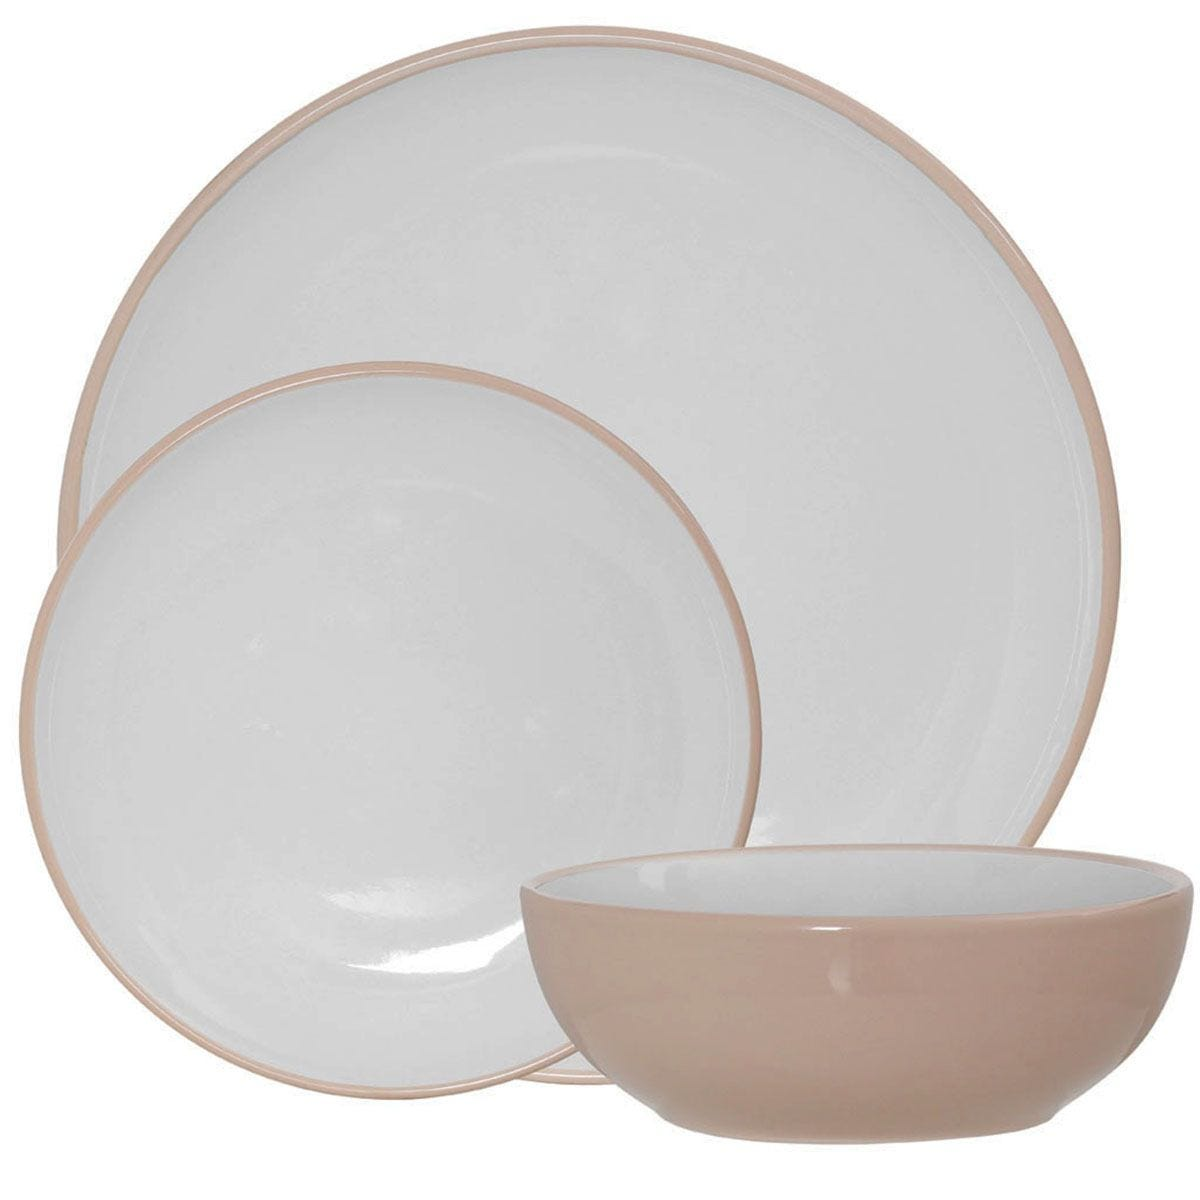 Premier Housewares 12-Piece Sienna Dinner Set - Pink